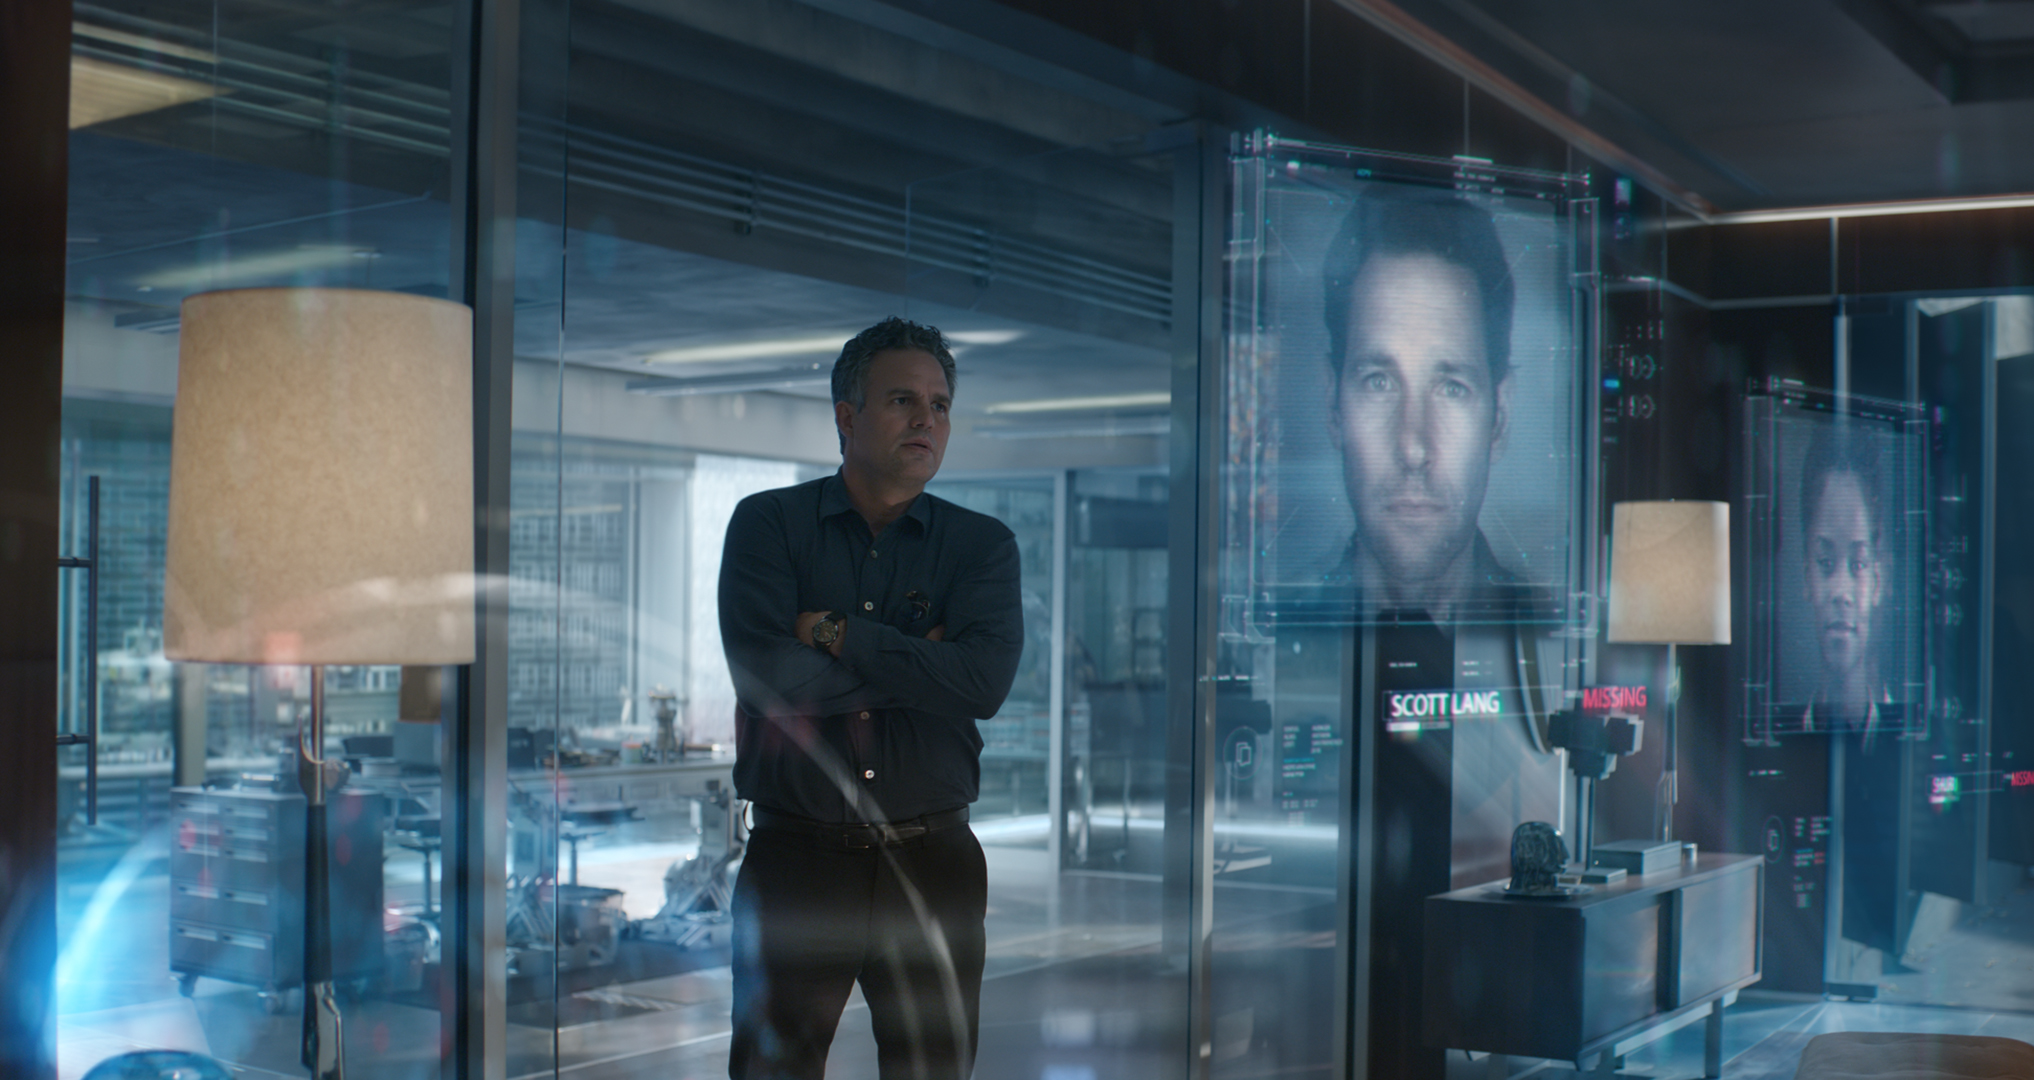 Ant-Man (Paul Rudd) gets set to pull a temporal rabbit out of his hat in Avengers: Endgame